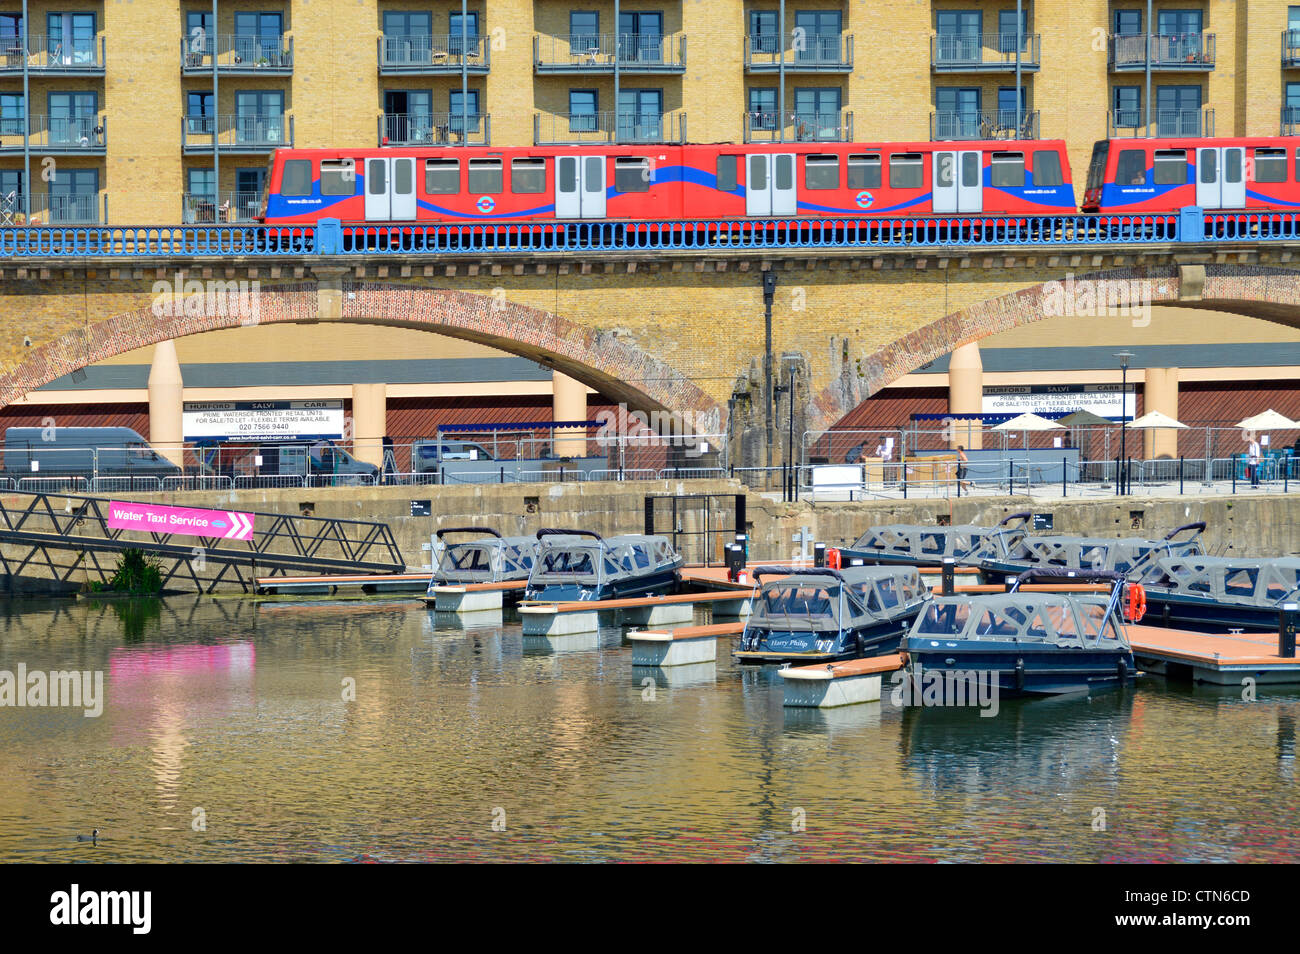 Water taxis moored close to Docklands Light Railway station providing waterborne transport to London 2012 Olympics - Stock Image